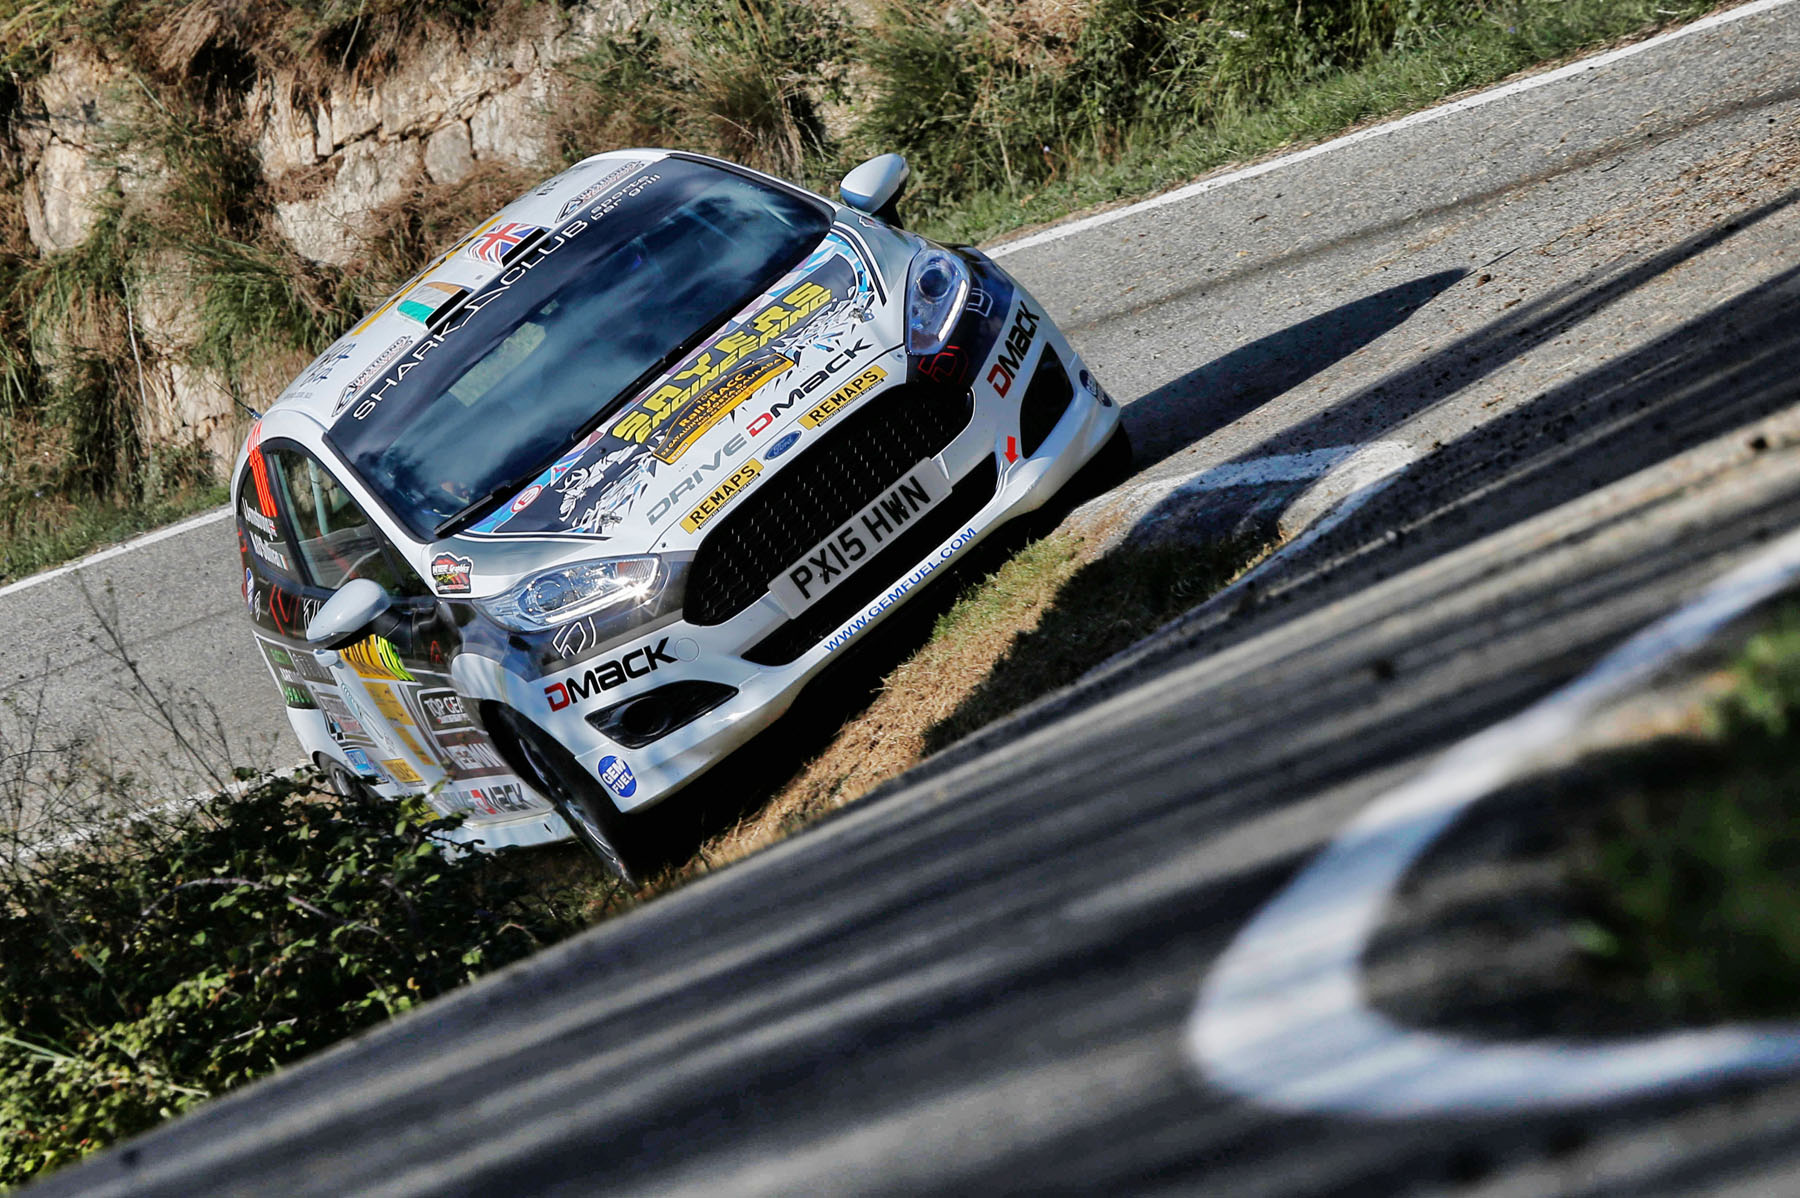 NI\'S JON ARMSTRONG CLINCHES ROOKIE CHAMPIONSHIP WIN AT RALLY SPAIN ...